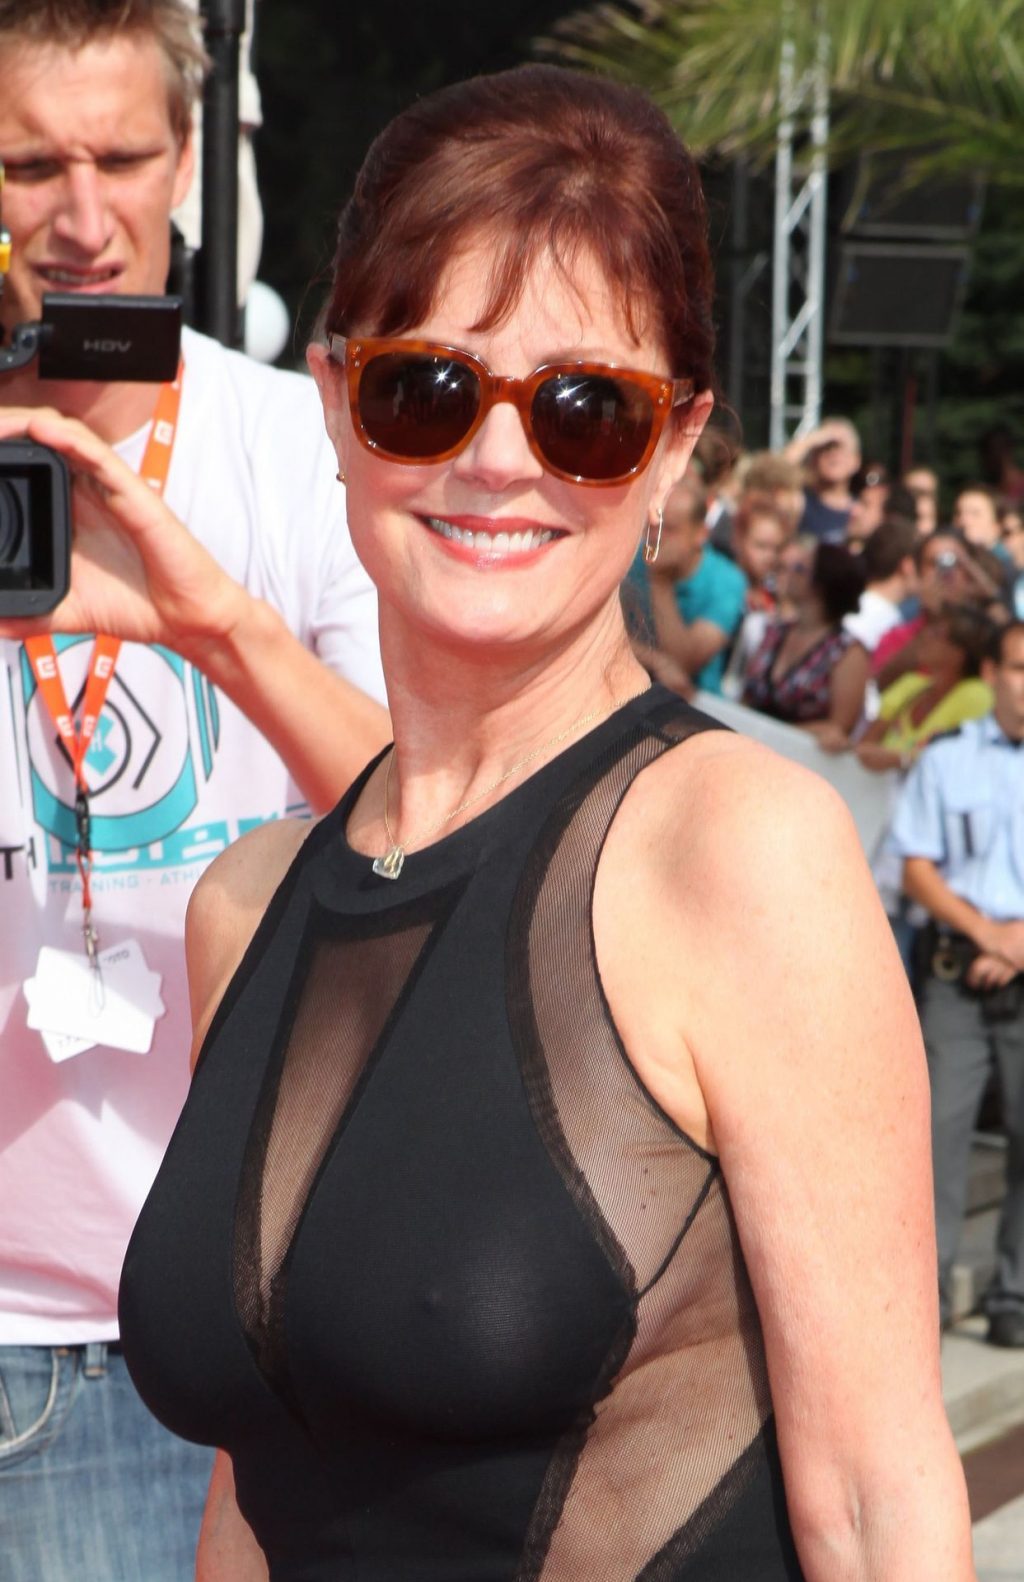 Susan Sarandon Shows Her Old Tits at the Film Festival (5 Photos)